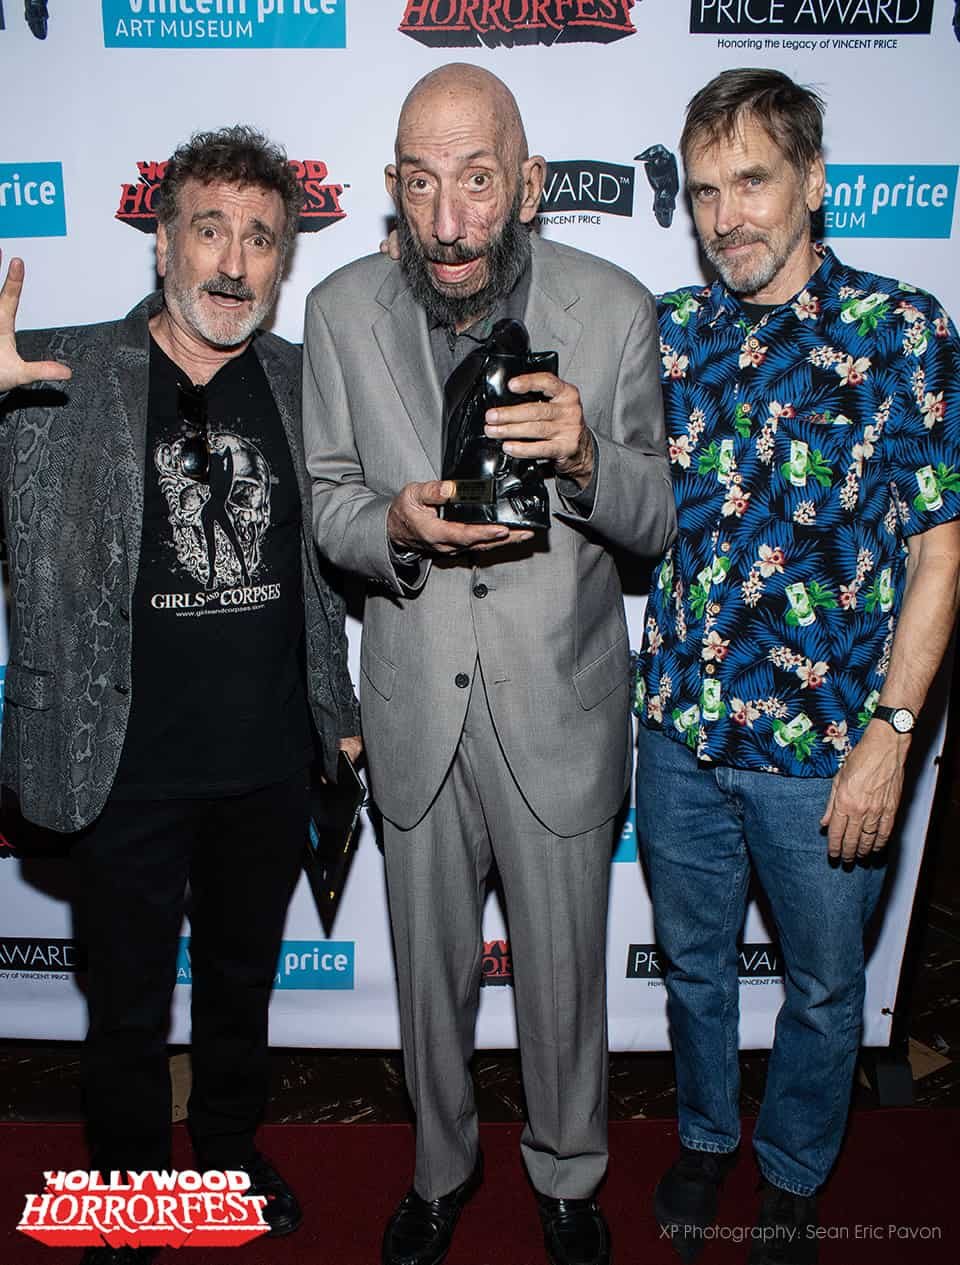 unnamed 9 - Images: Sid Haig Was Honored with the 3rd Annual Price Award